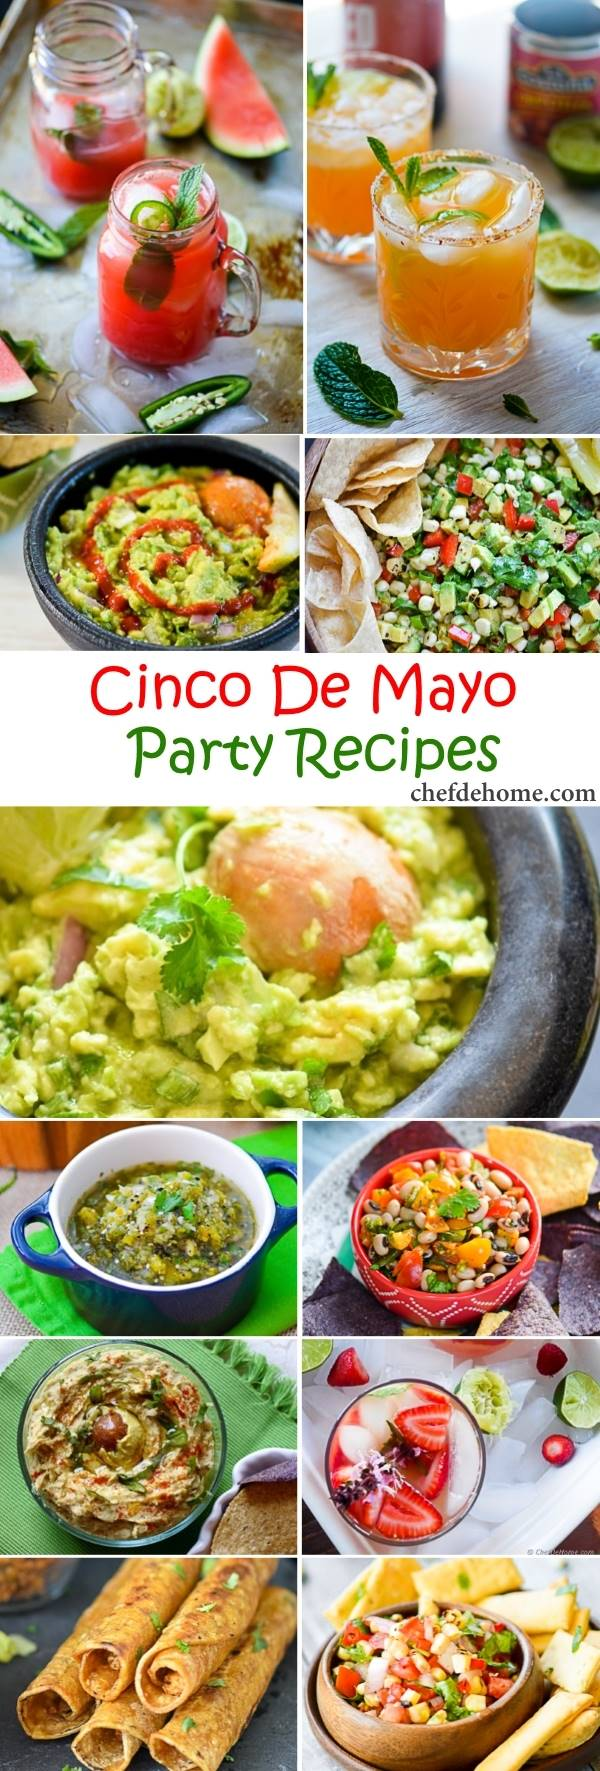 Easy Mexican Fiesta - Cinco De Mayo Party Recipes